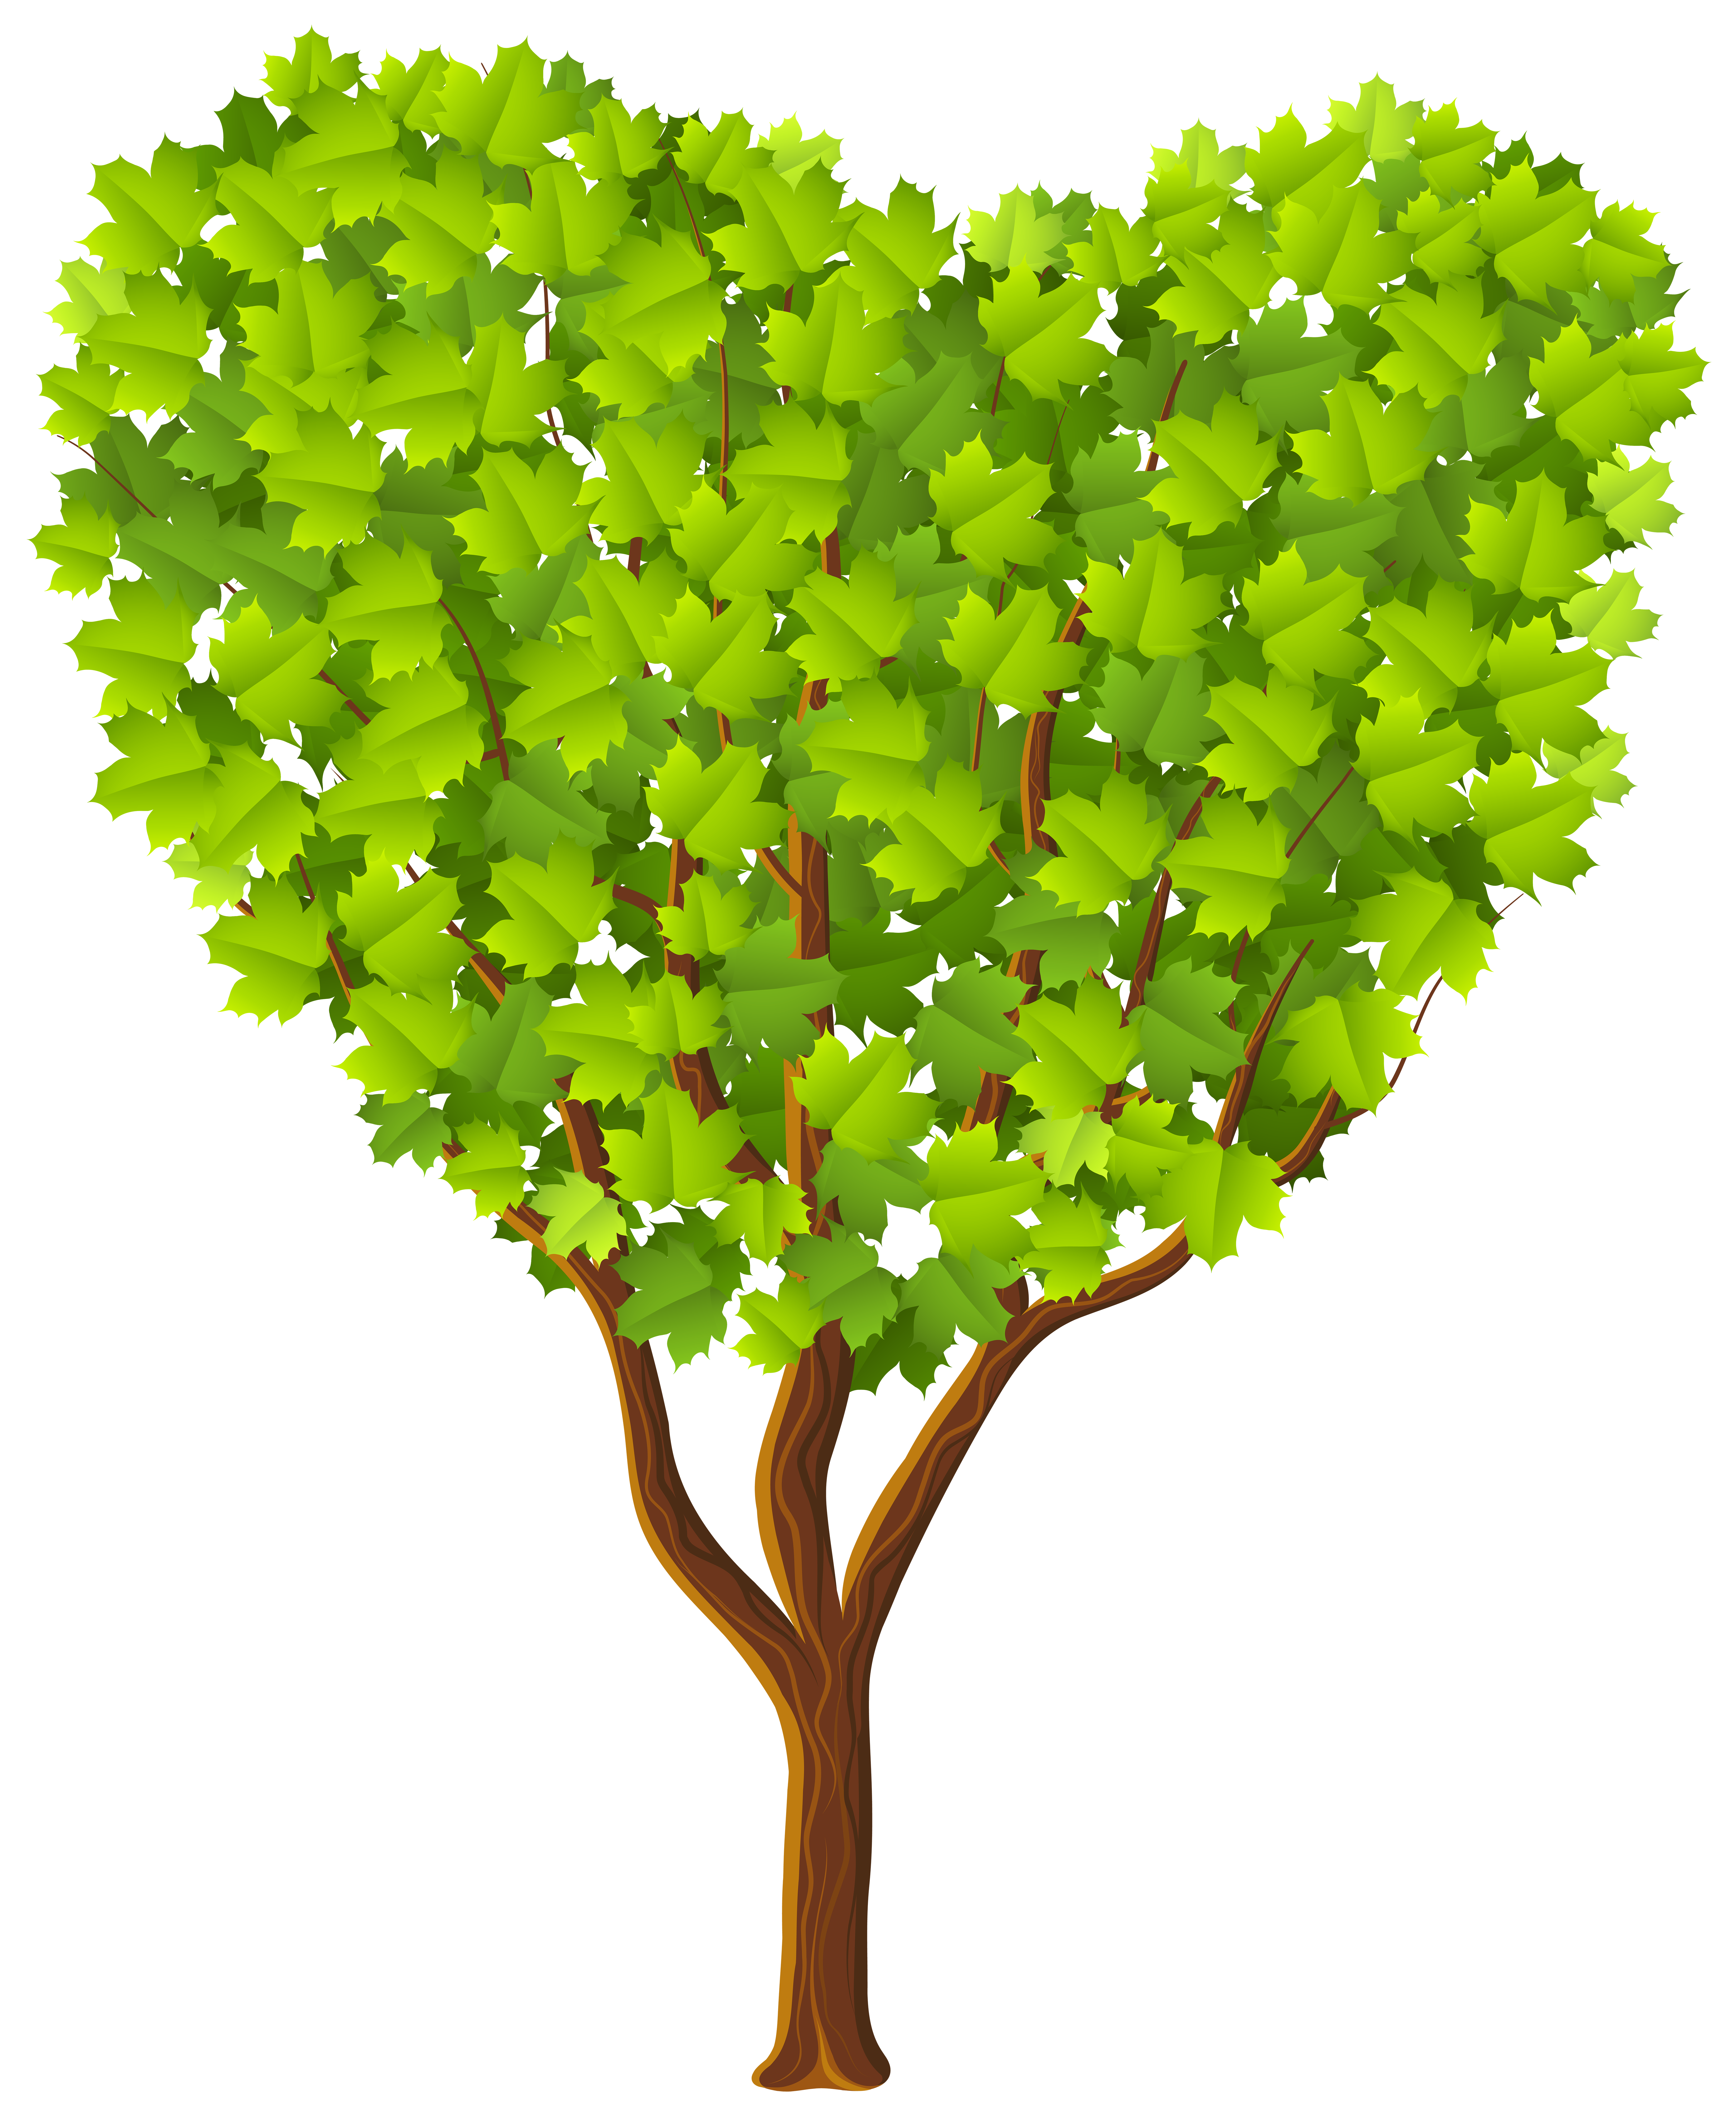 Clipart hearts plant. Green heart tree transparent